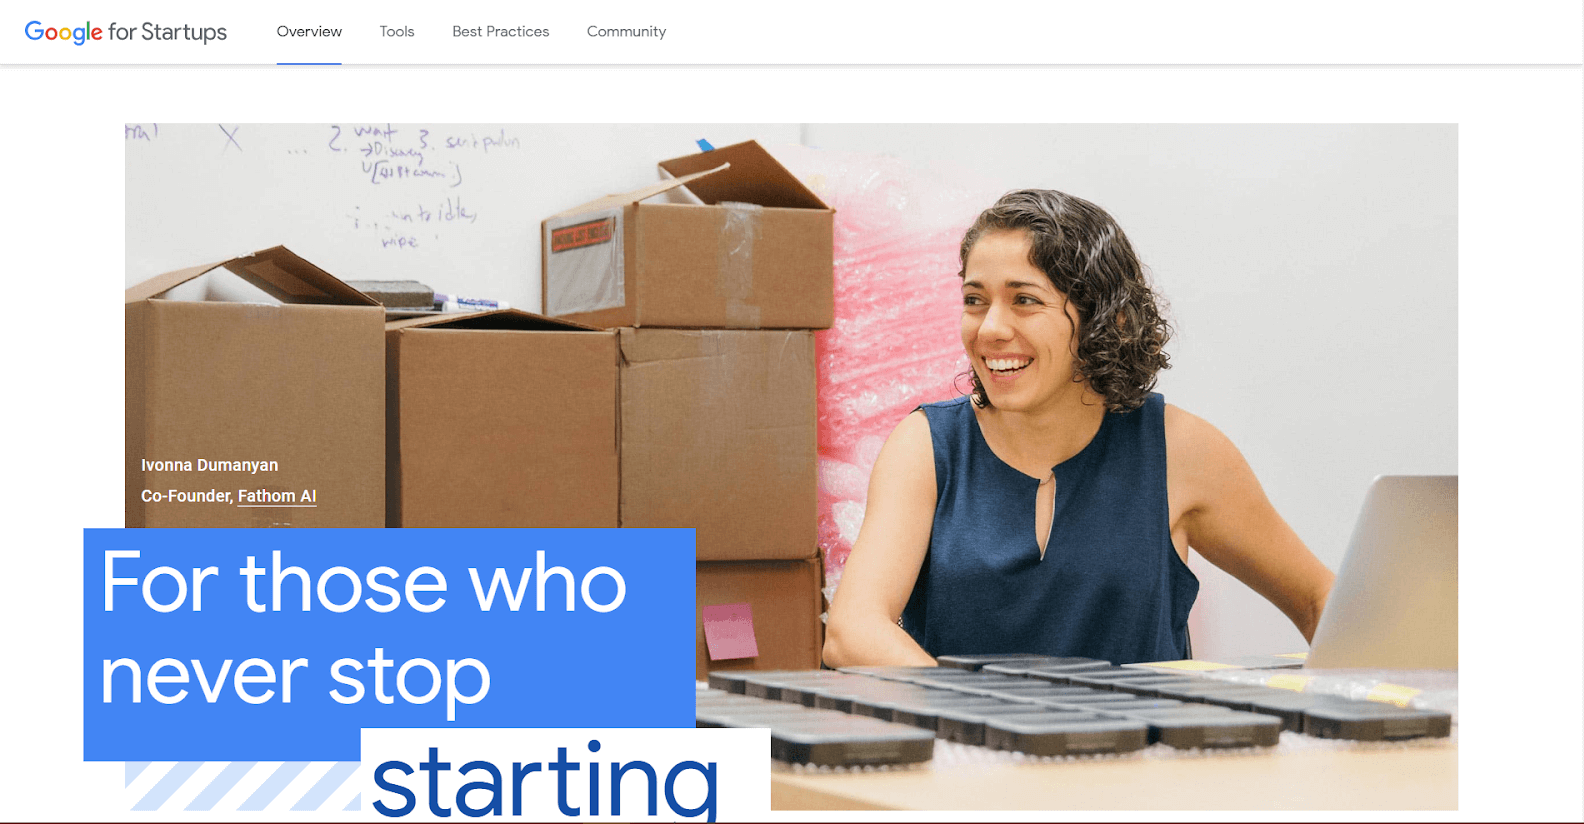 Google for Startups Tools